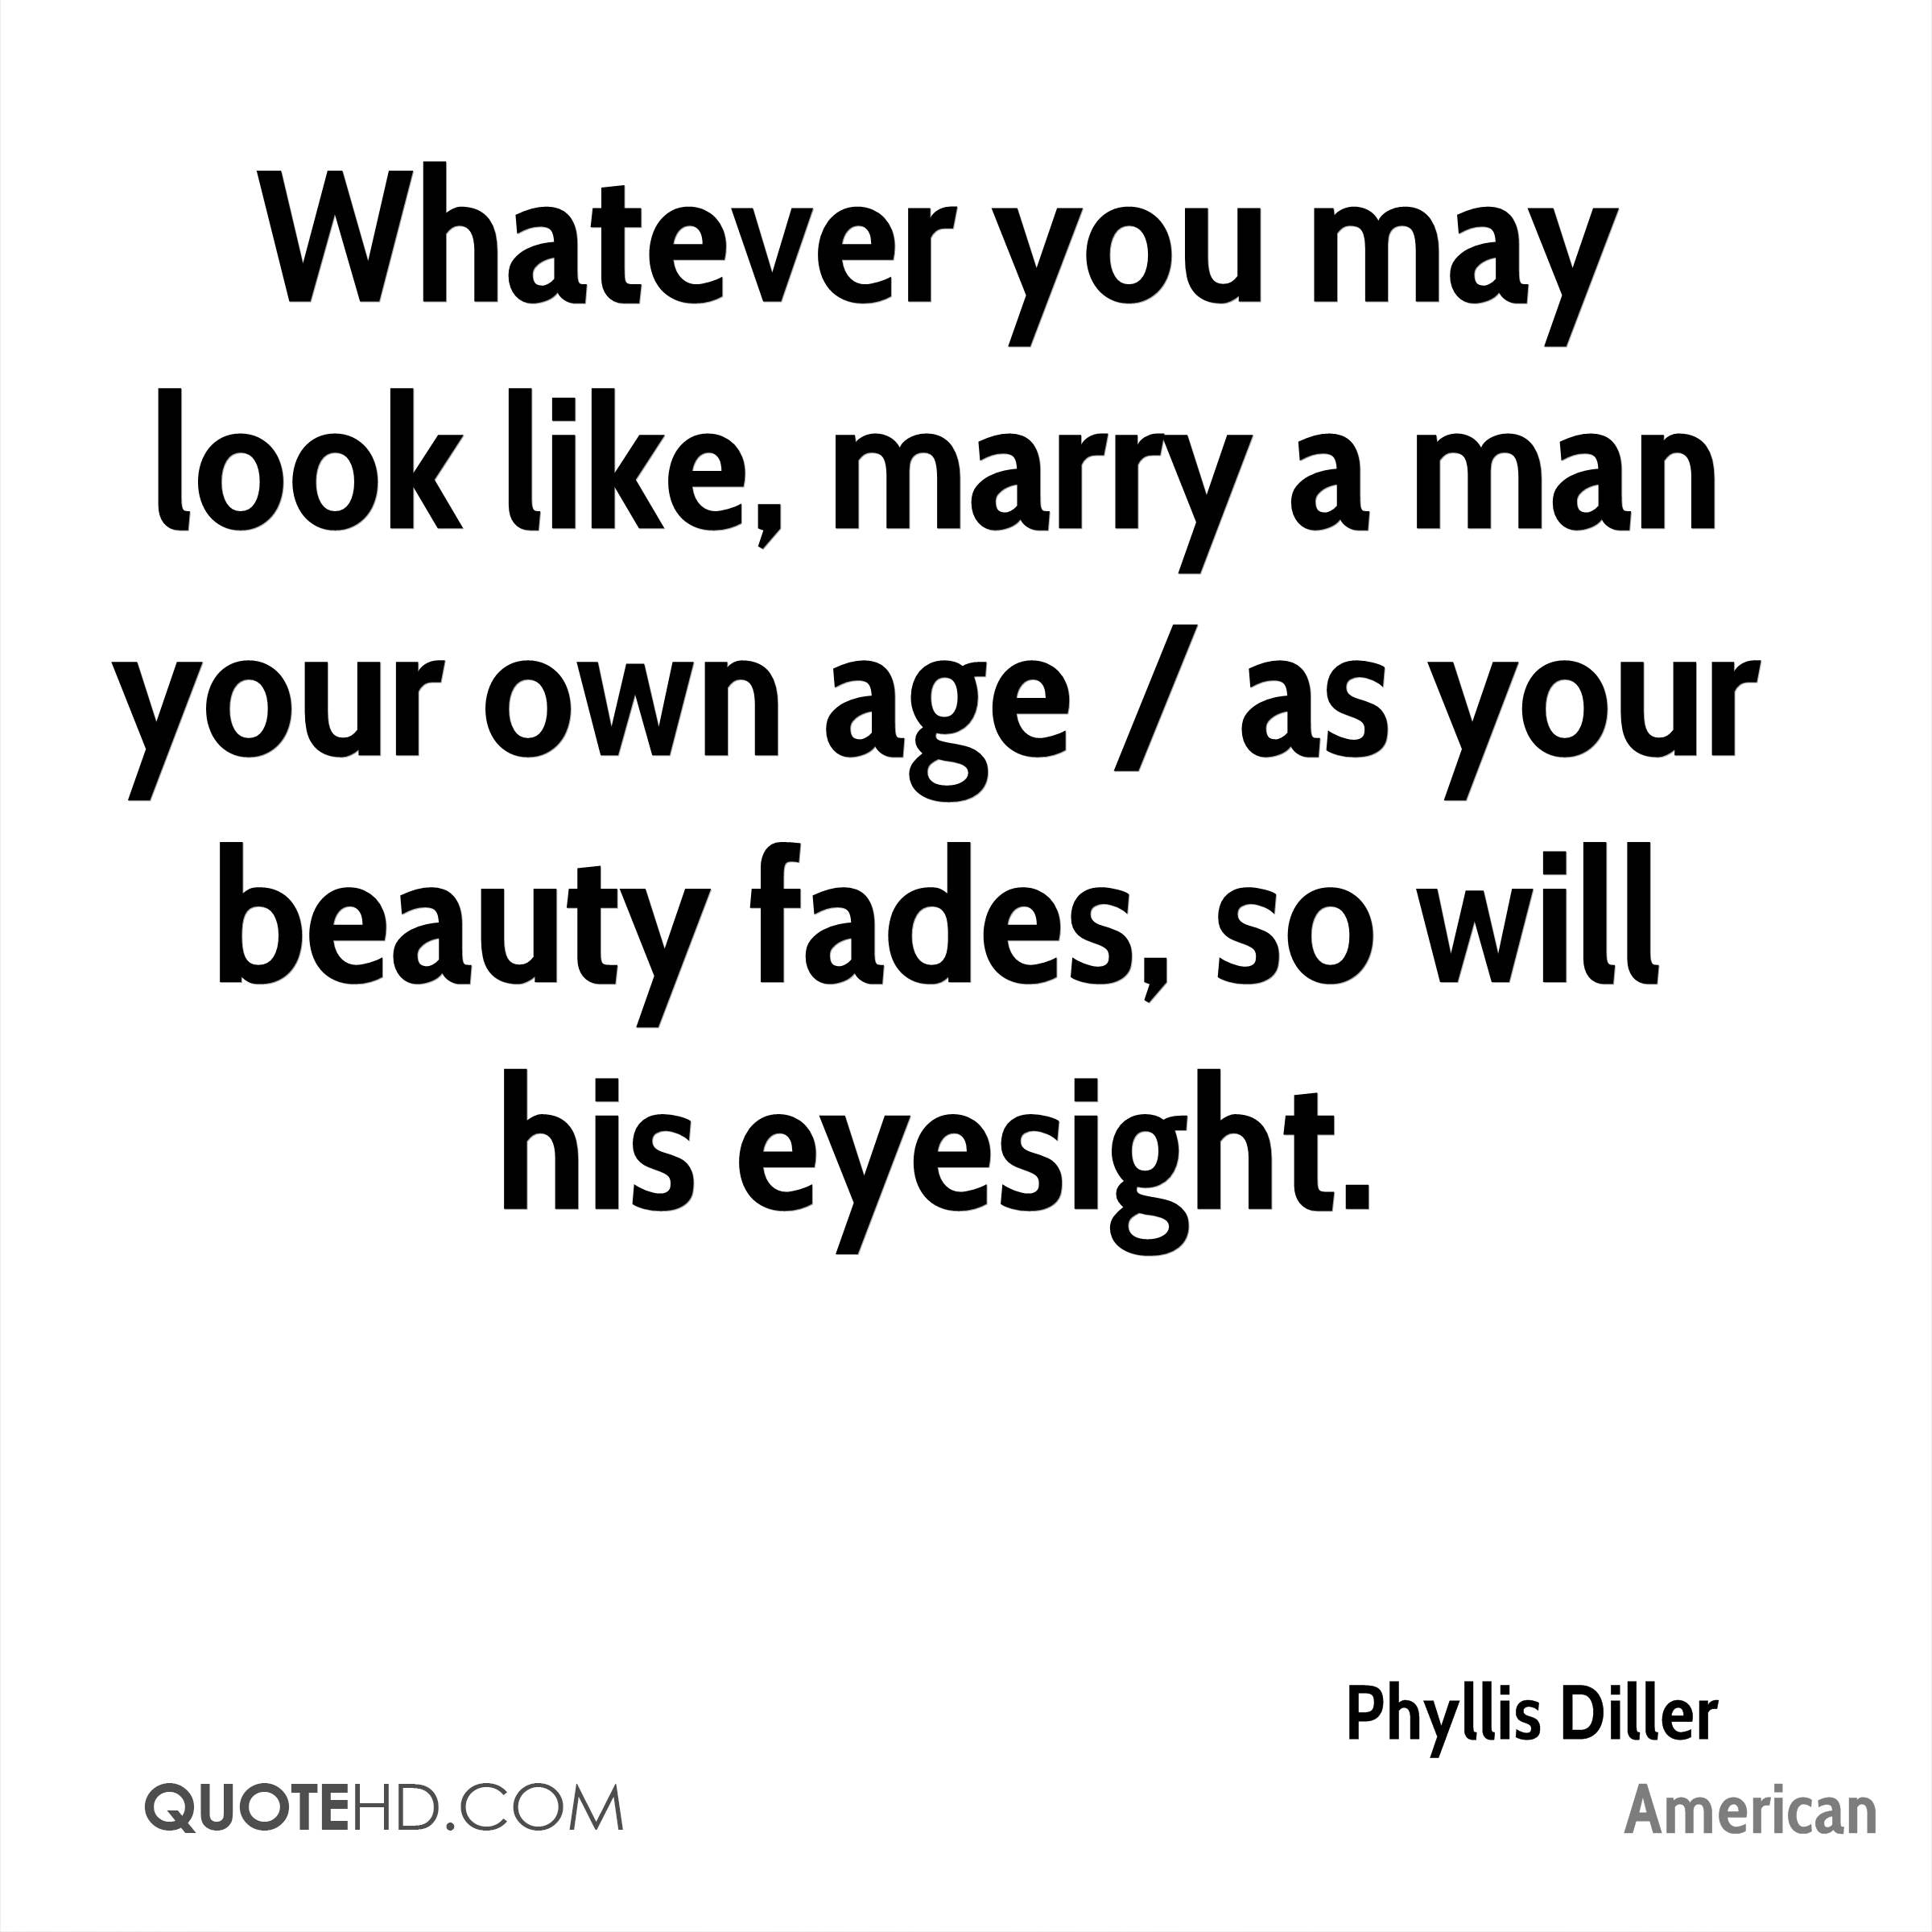 Looking For A Good Man Quotes: Phyllis Diller Quotes